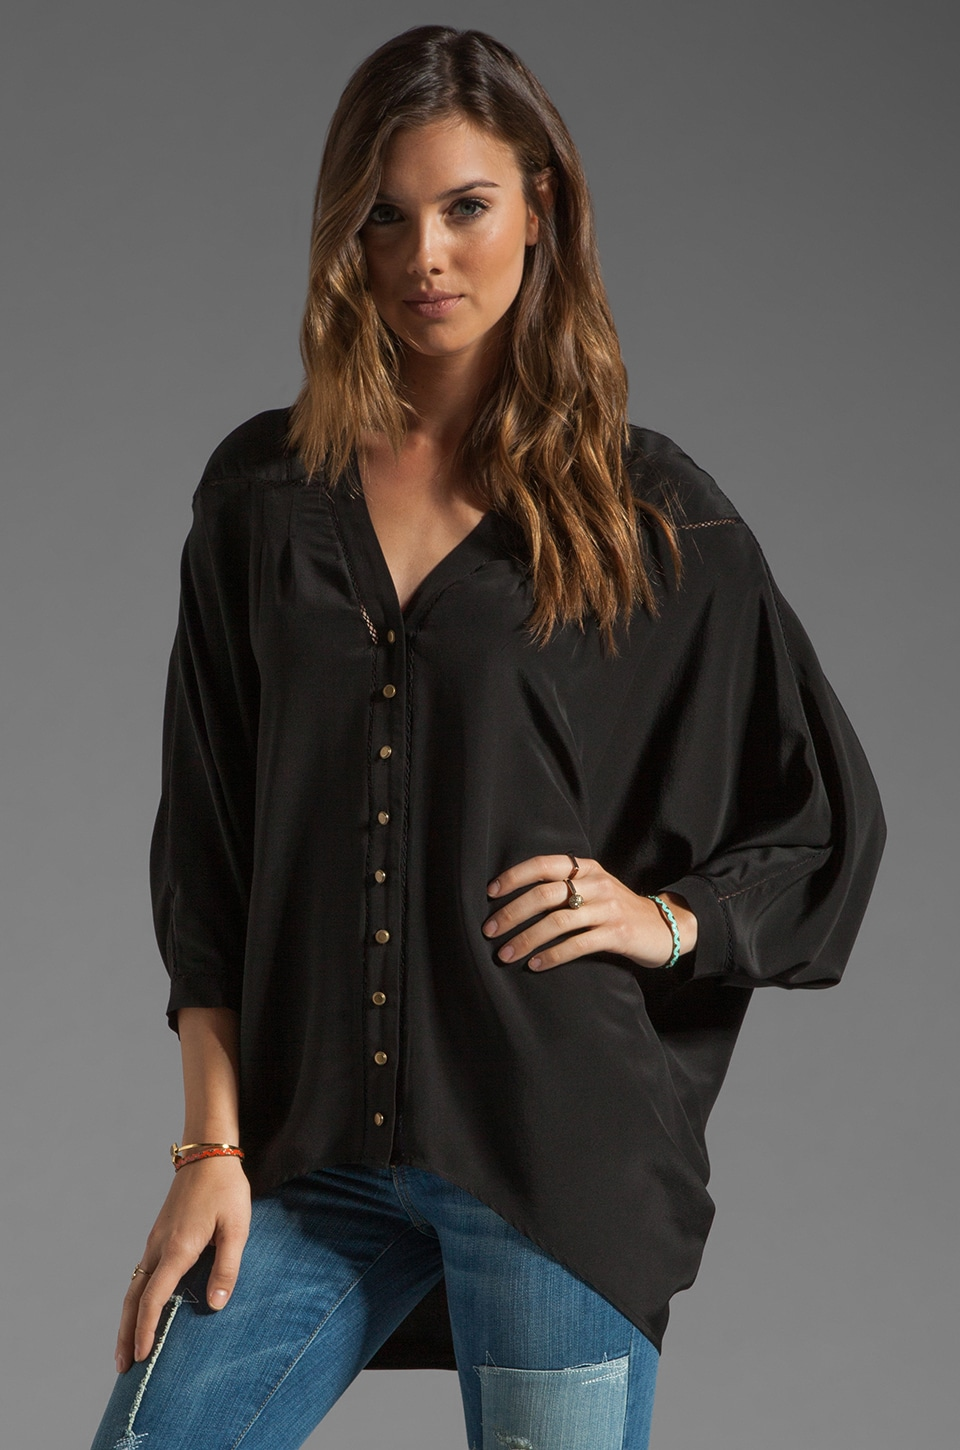 Twelfth Street By Cynthia Vincent High-Low Dolman Blouse in Black